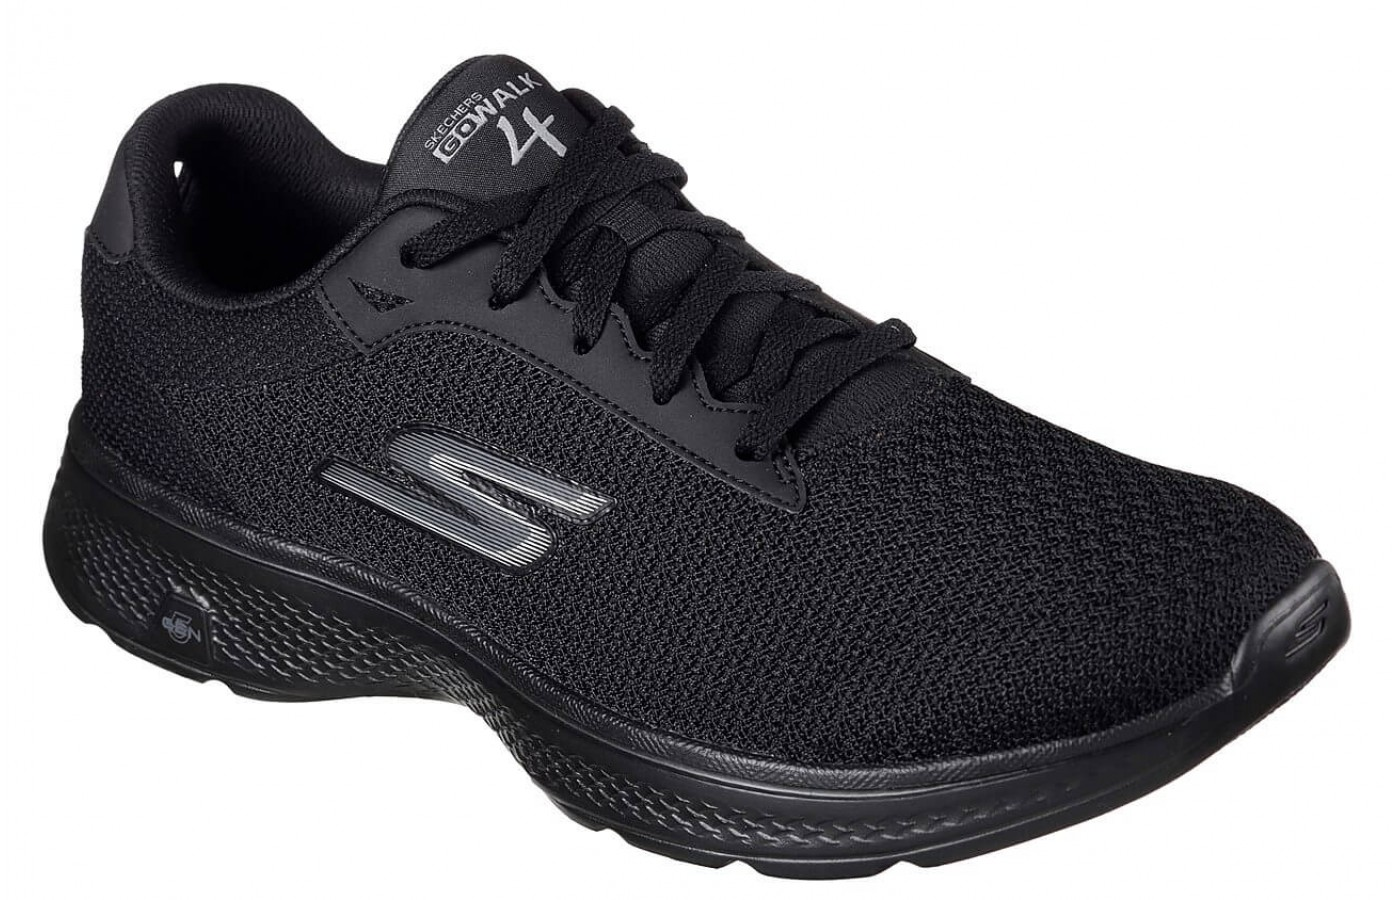 d646fdabe235b Skechers GOwalk 4 Reviewed - To Buy or Not in Apr 2019